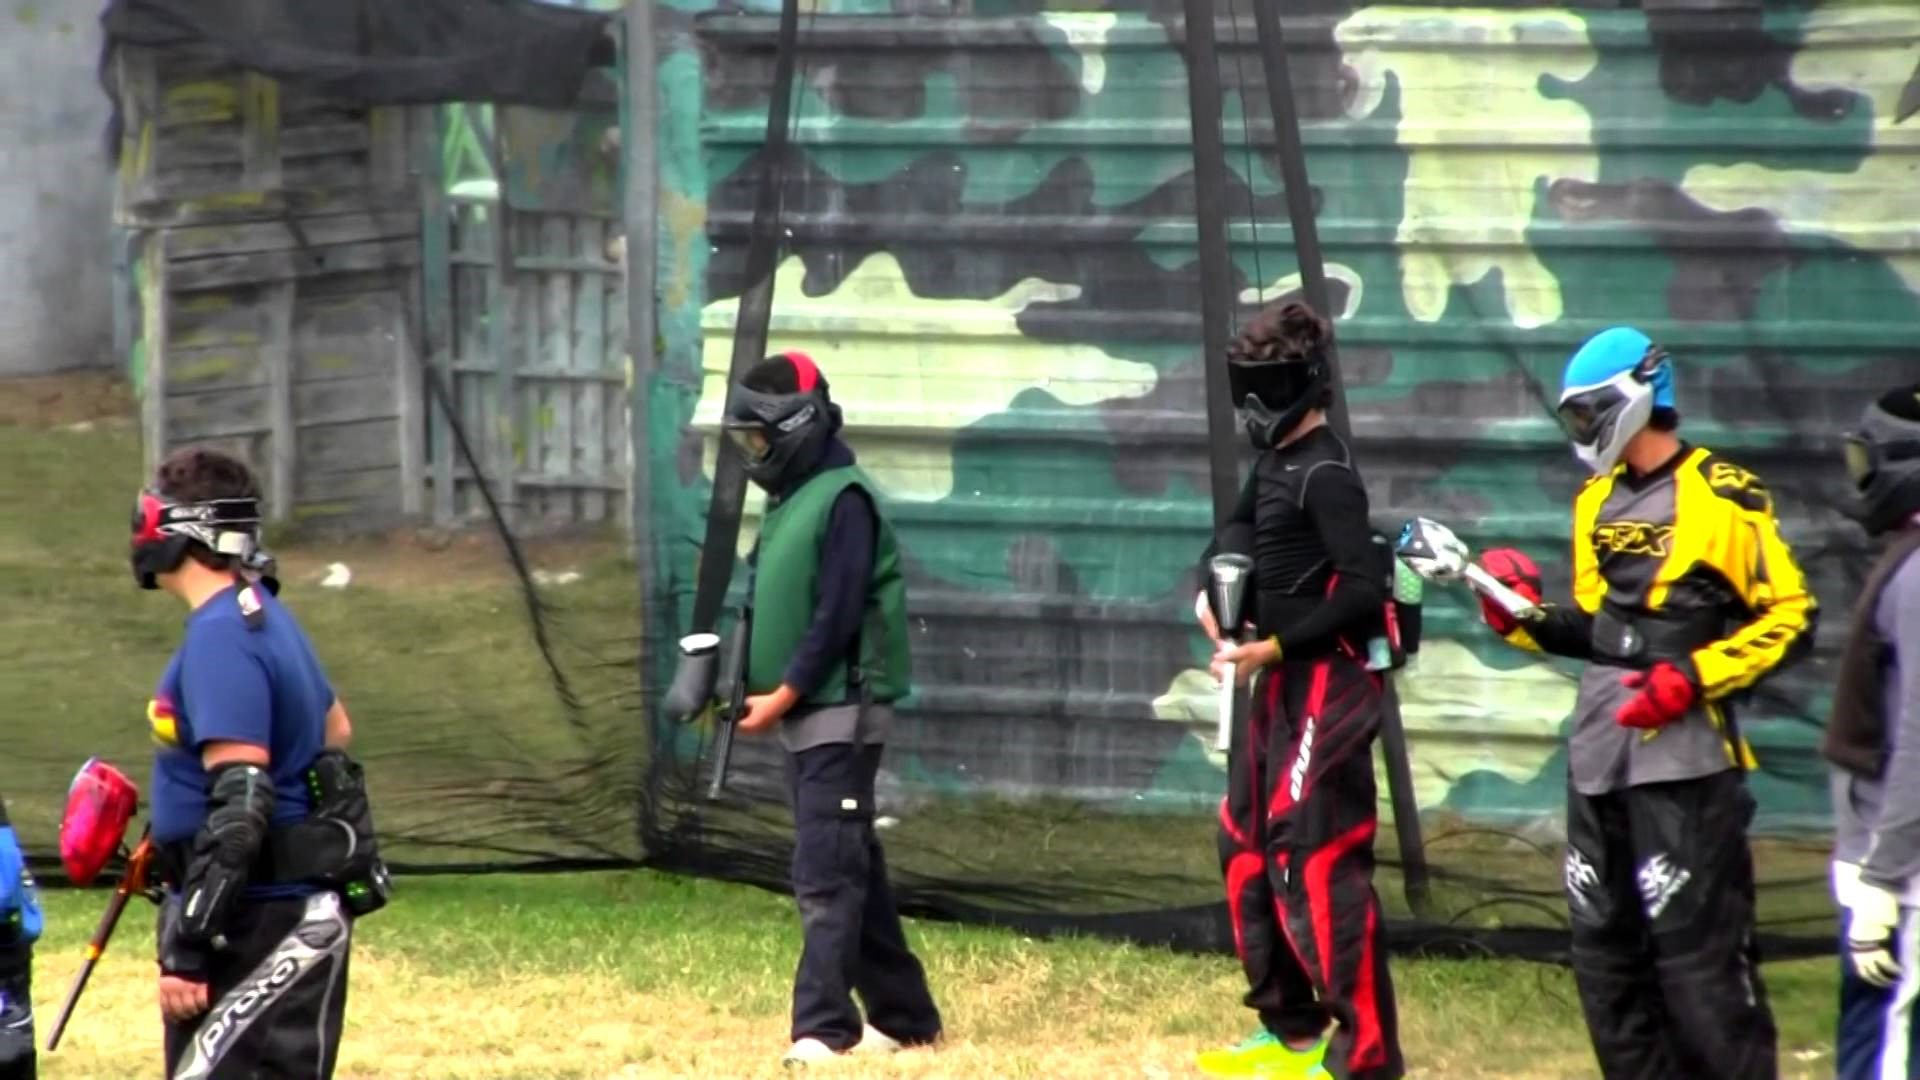 Practice paintball with team members